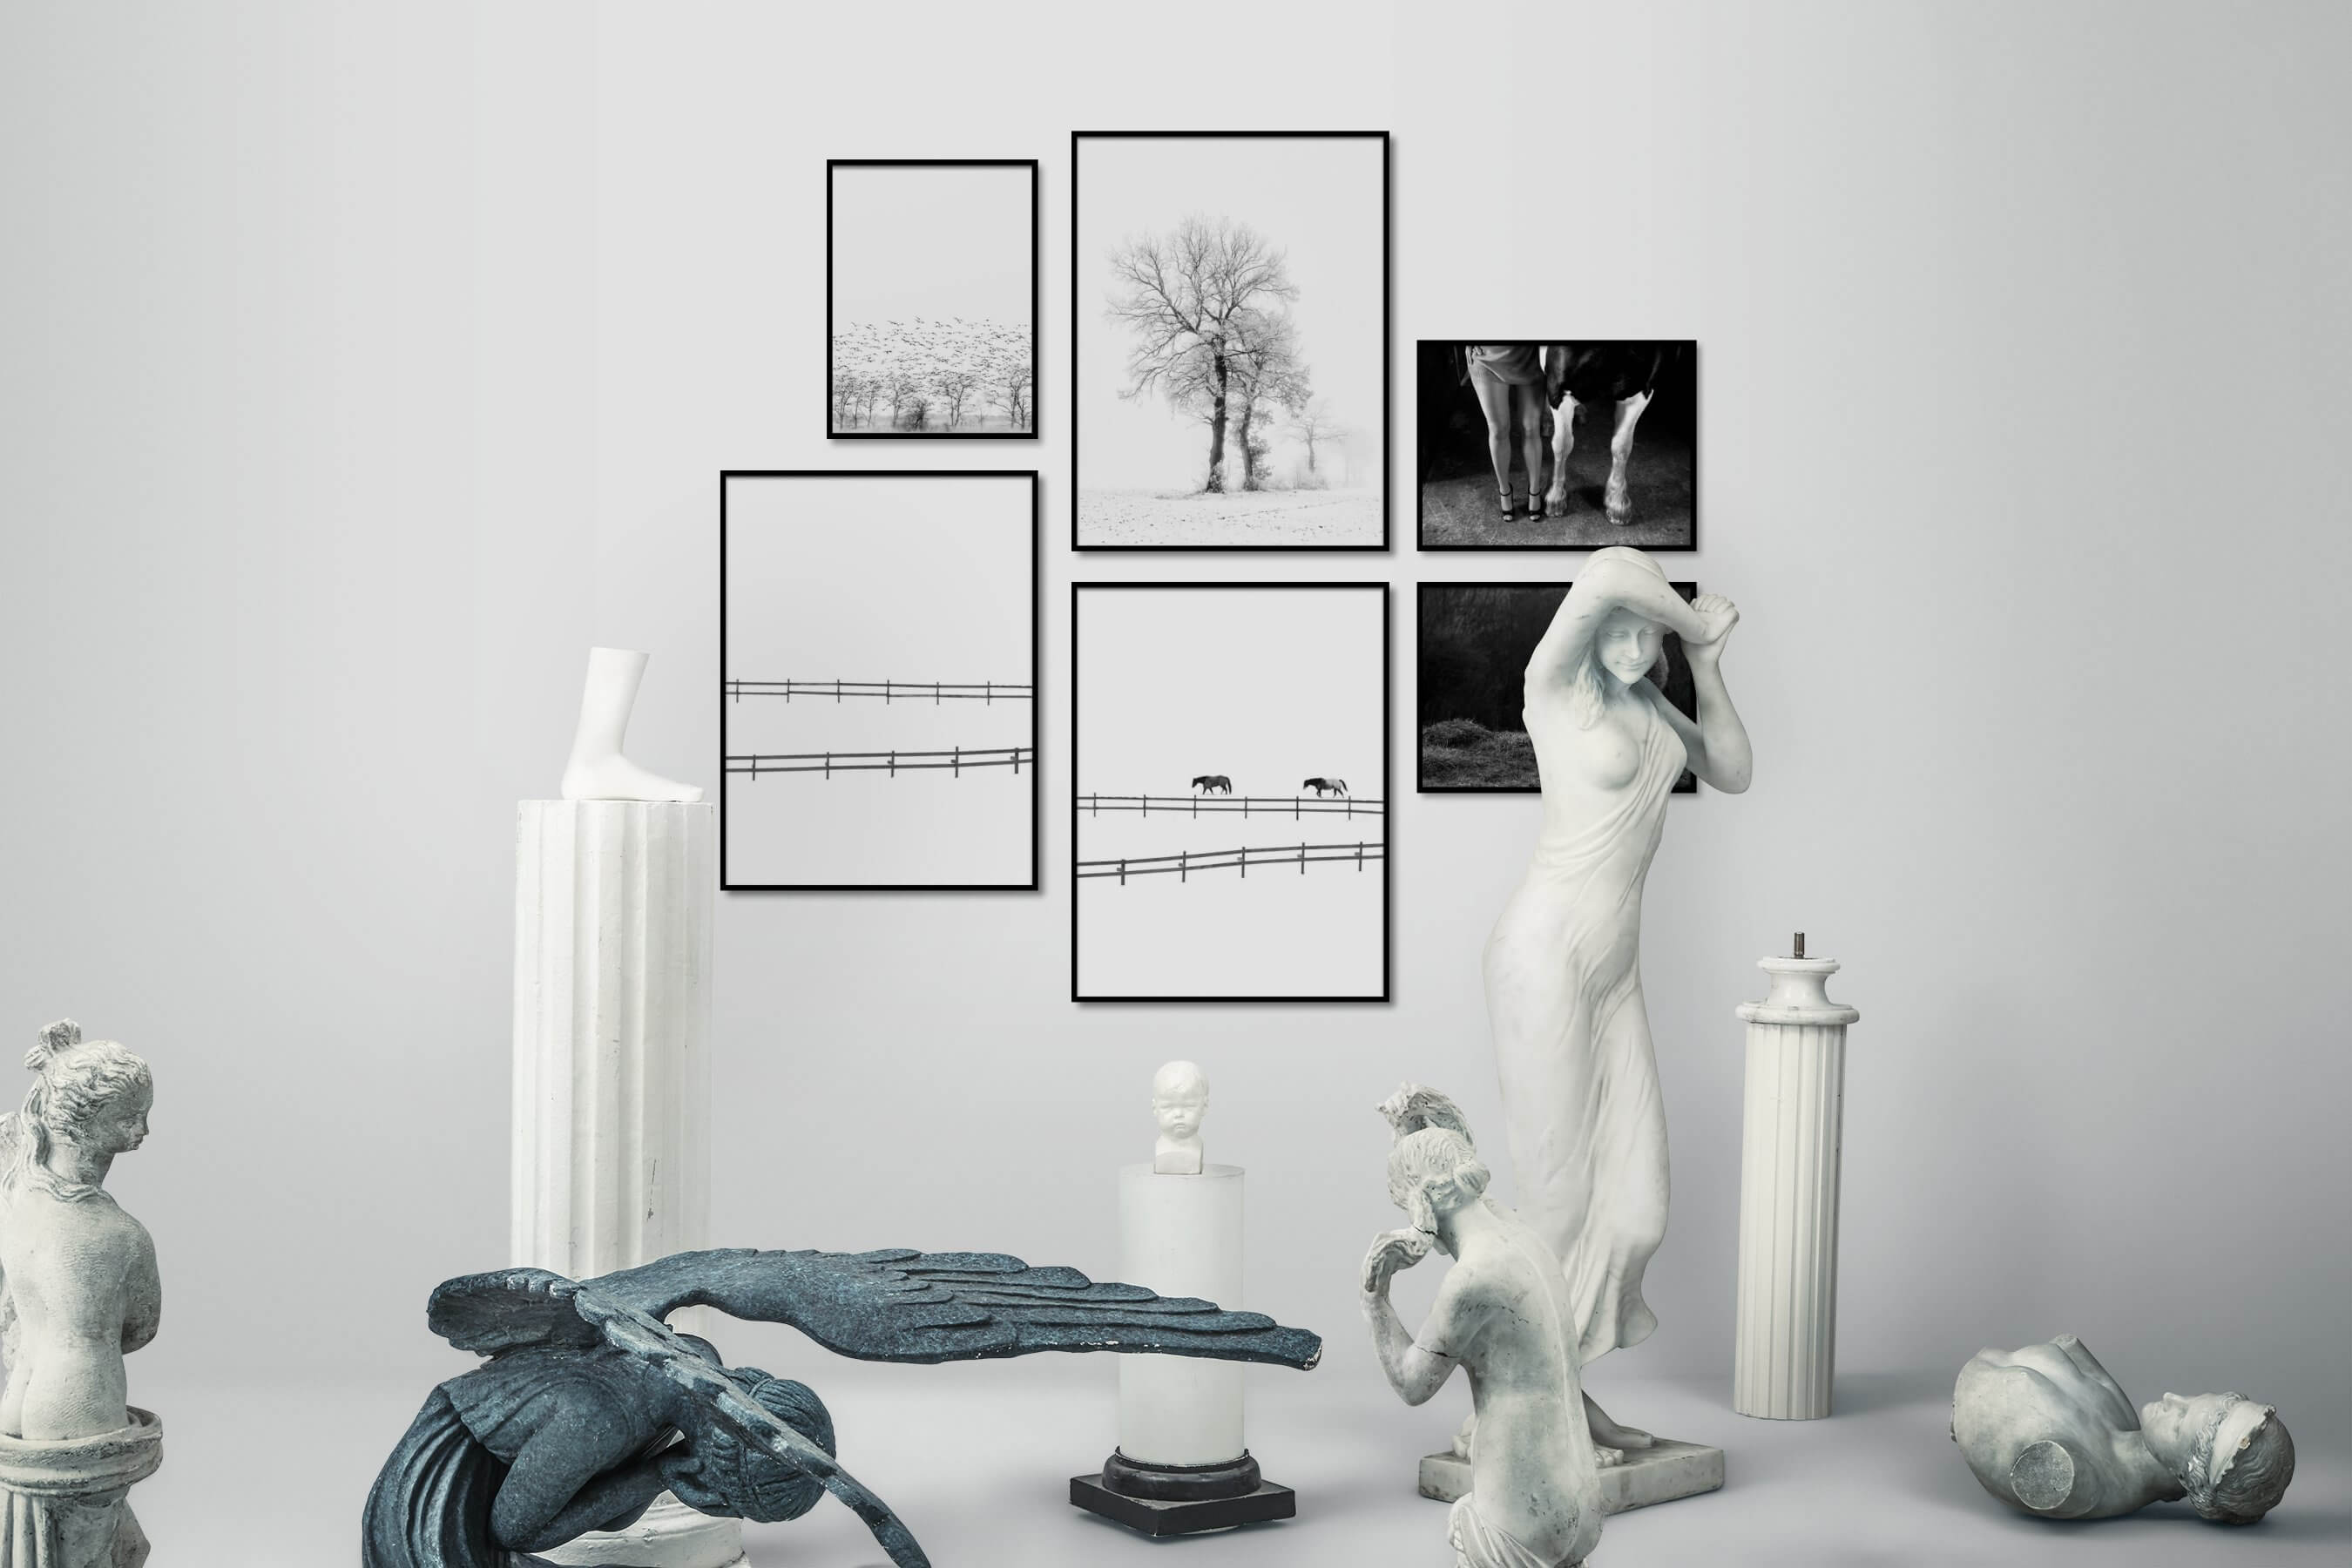 Gallery wall idea with six framed pictures arranged on a wall depicting Black & White, Bright Tones, For the Minimalist, Nature, Country Life, Animals, and For the Moderate